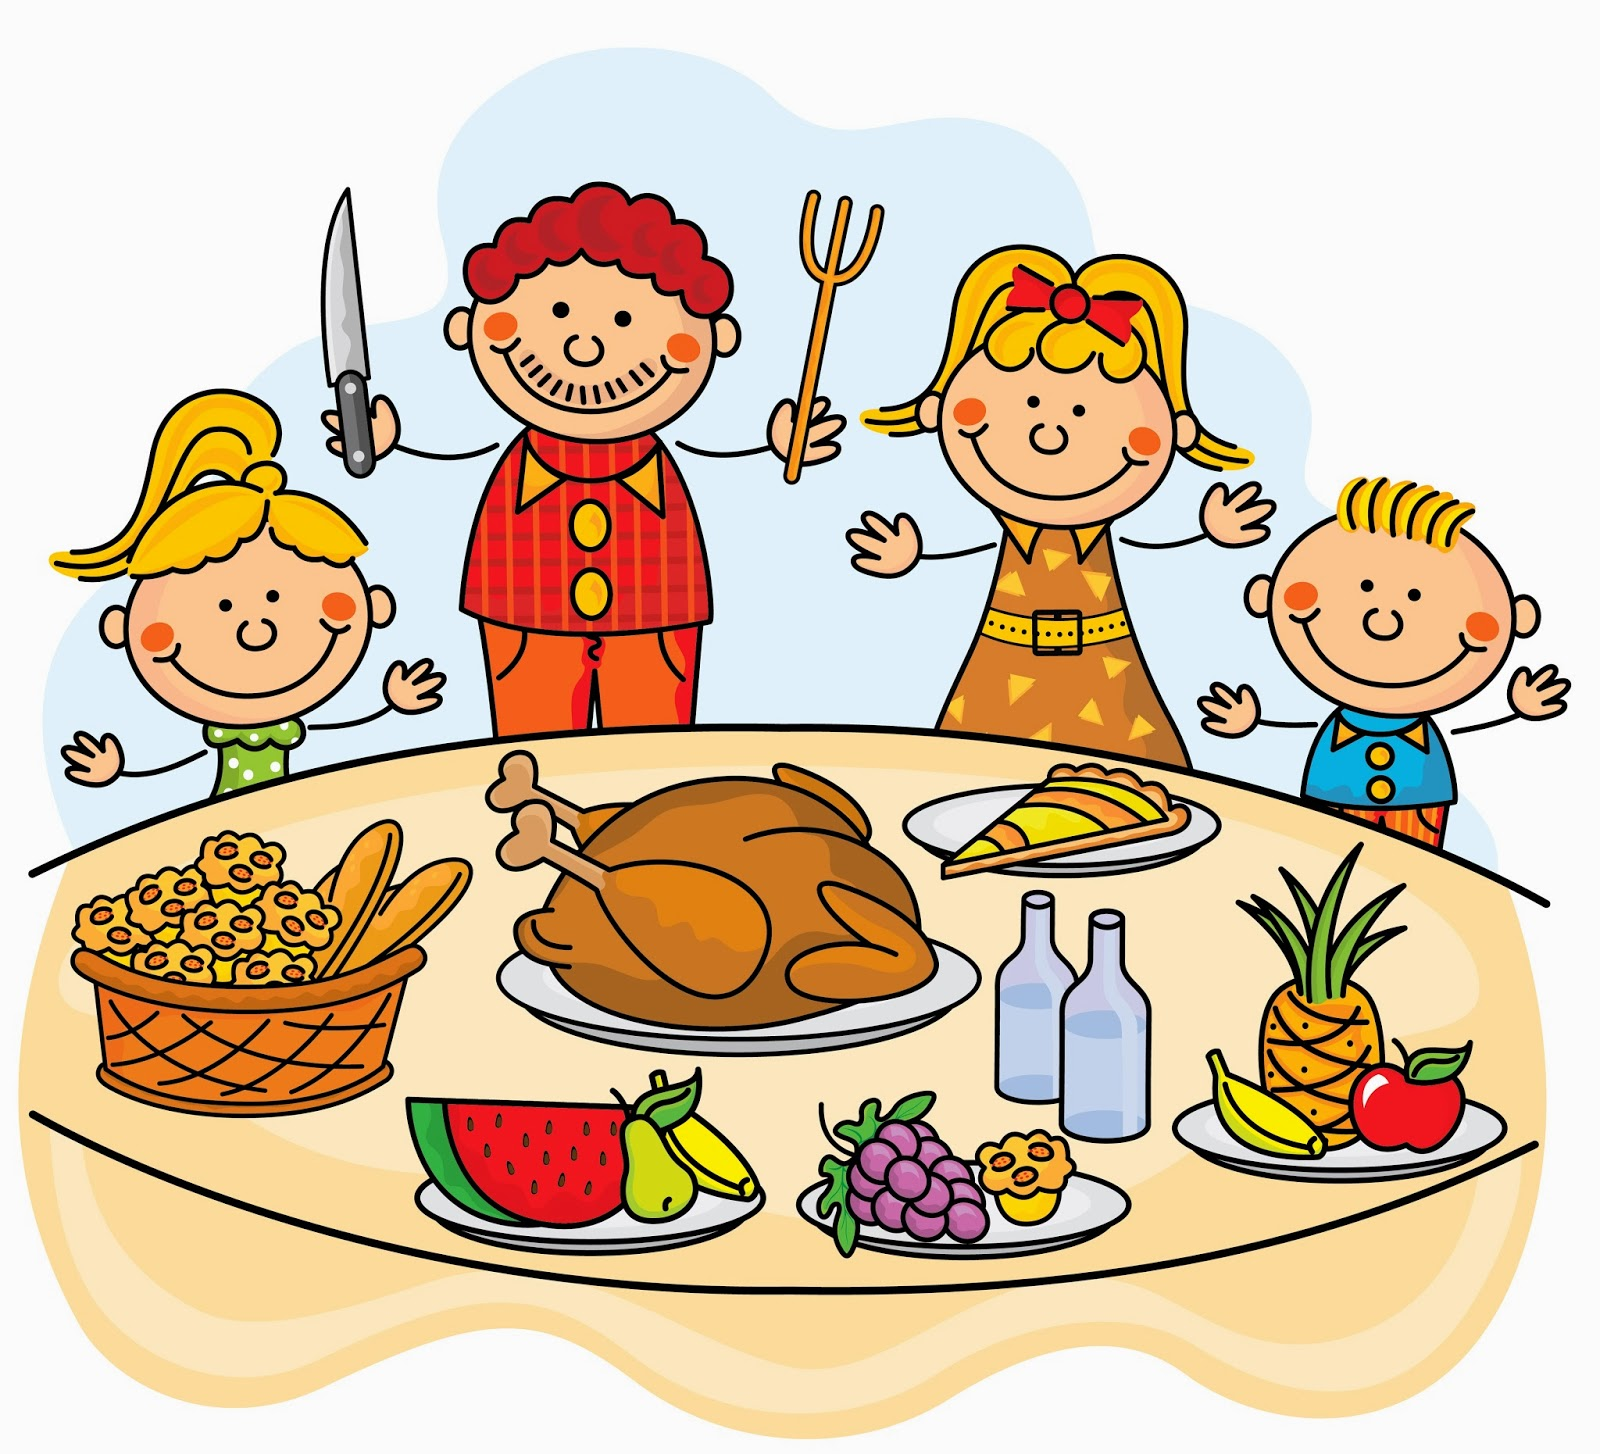 Plate at getdrawings com. Dinner clipart dinner table svg download